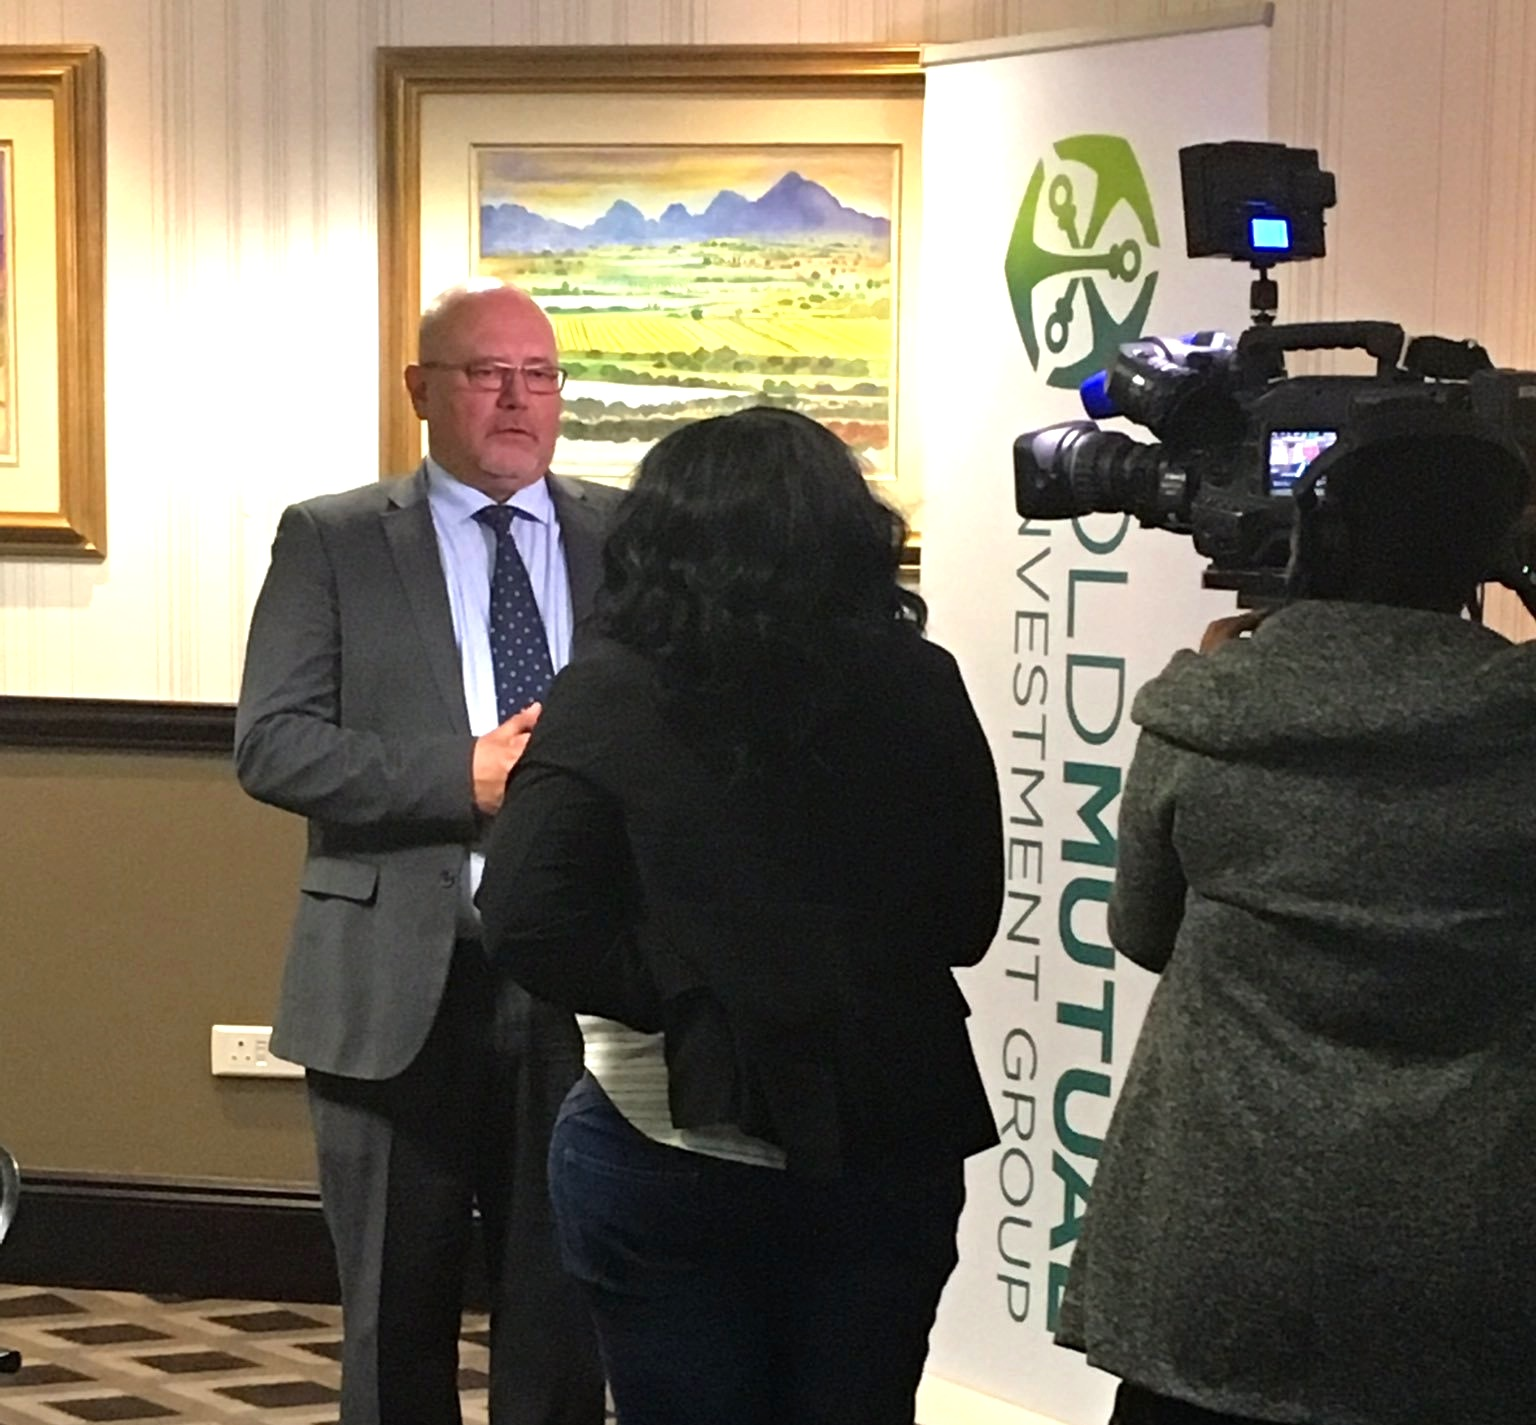 SABC 1 interviews an economist from Old Mutual Investment Group at their quarterly media briefings.